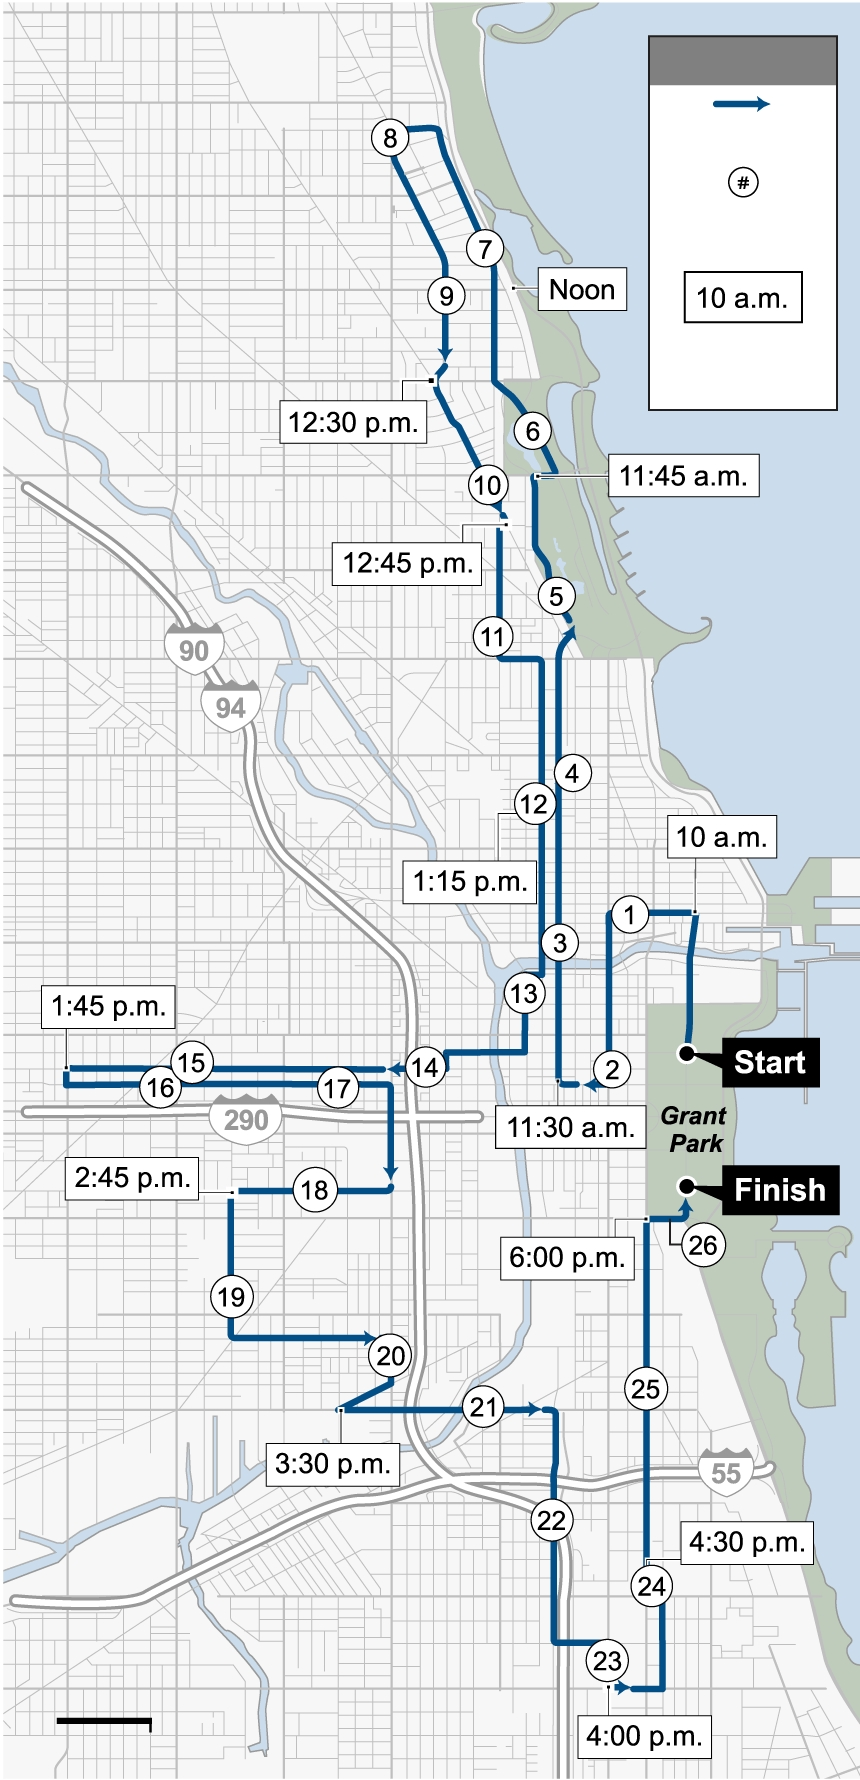 Chicago Marathon 2019: Course Map, Where To Watch The Race pertaining to Chicago Marithone Map